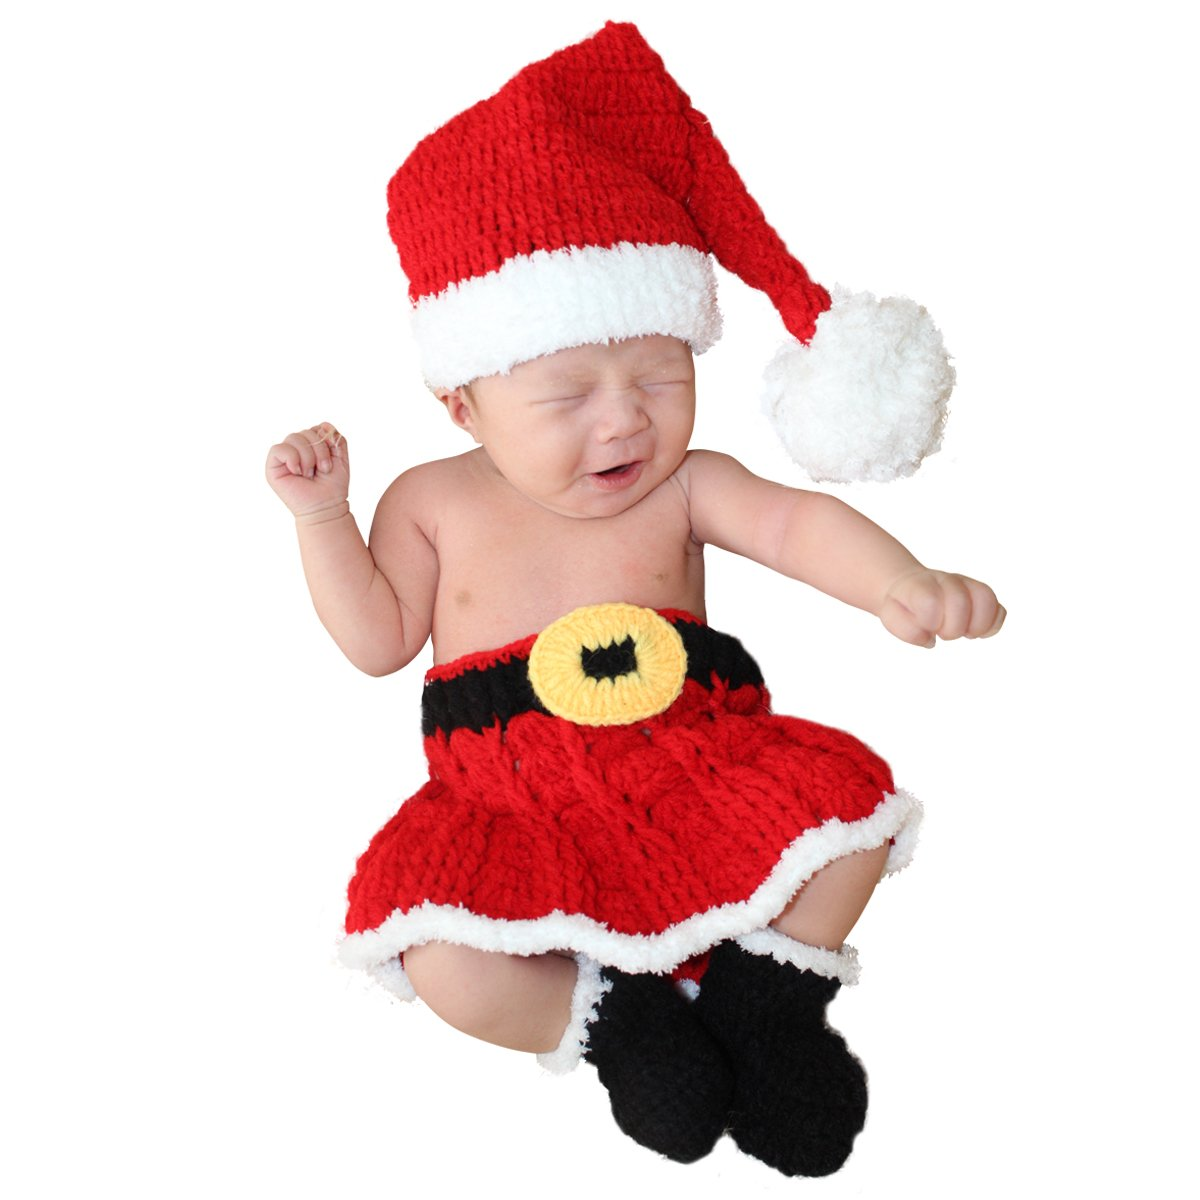 a80b61f1a34 Amazon.com  Jastore Infant Newborn Costume Photography Prop Santa Claus  Crochet Knitted (Style 1)  Clothing